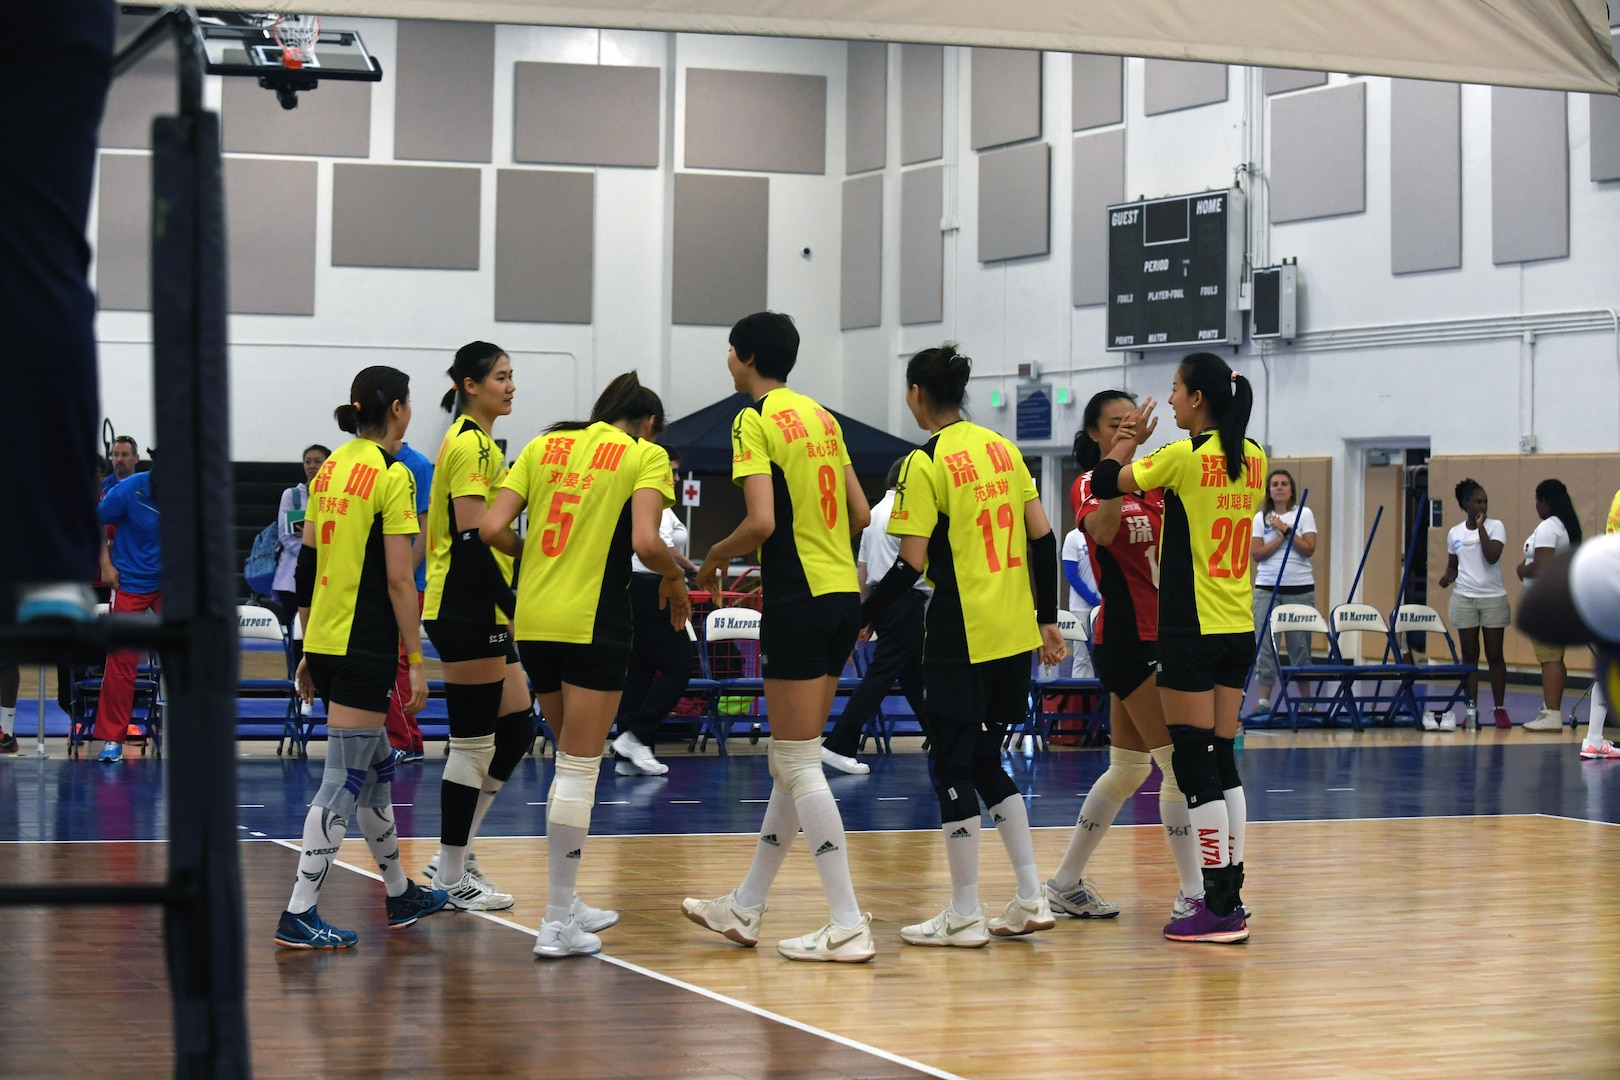 Chinese Women's Volleyball Team celebrates their victory over USA in match 1 of the 18th Conseil International du Sport Militaire (CISM) World Women's Military Volleyball Championship at Naval Station Mayport, Florida on 4 June 2017. Mayport is hosting the CISM Championship from 2-11 June.  Finals are on 9 June.